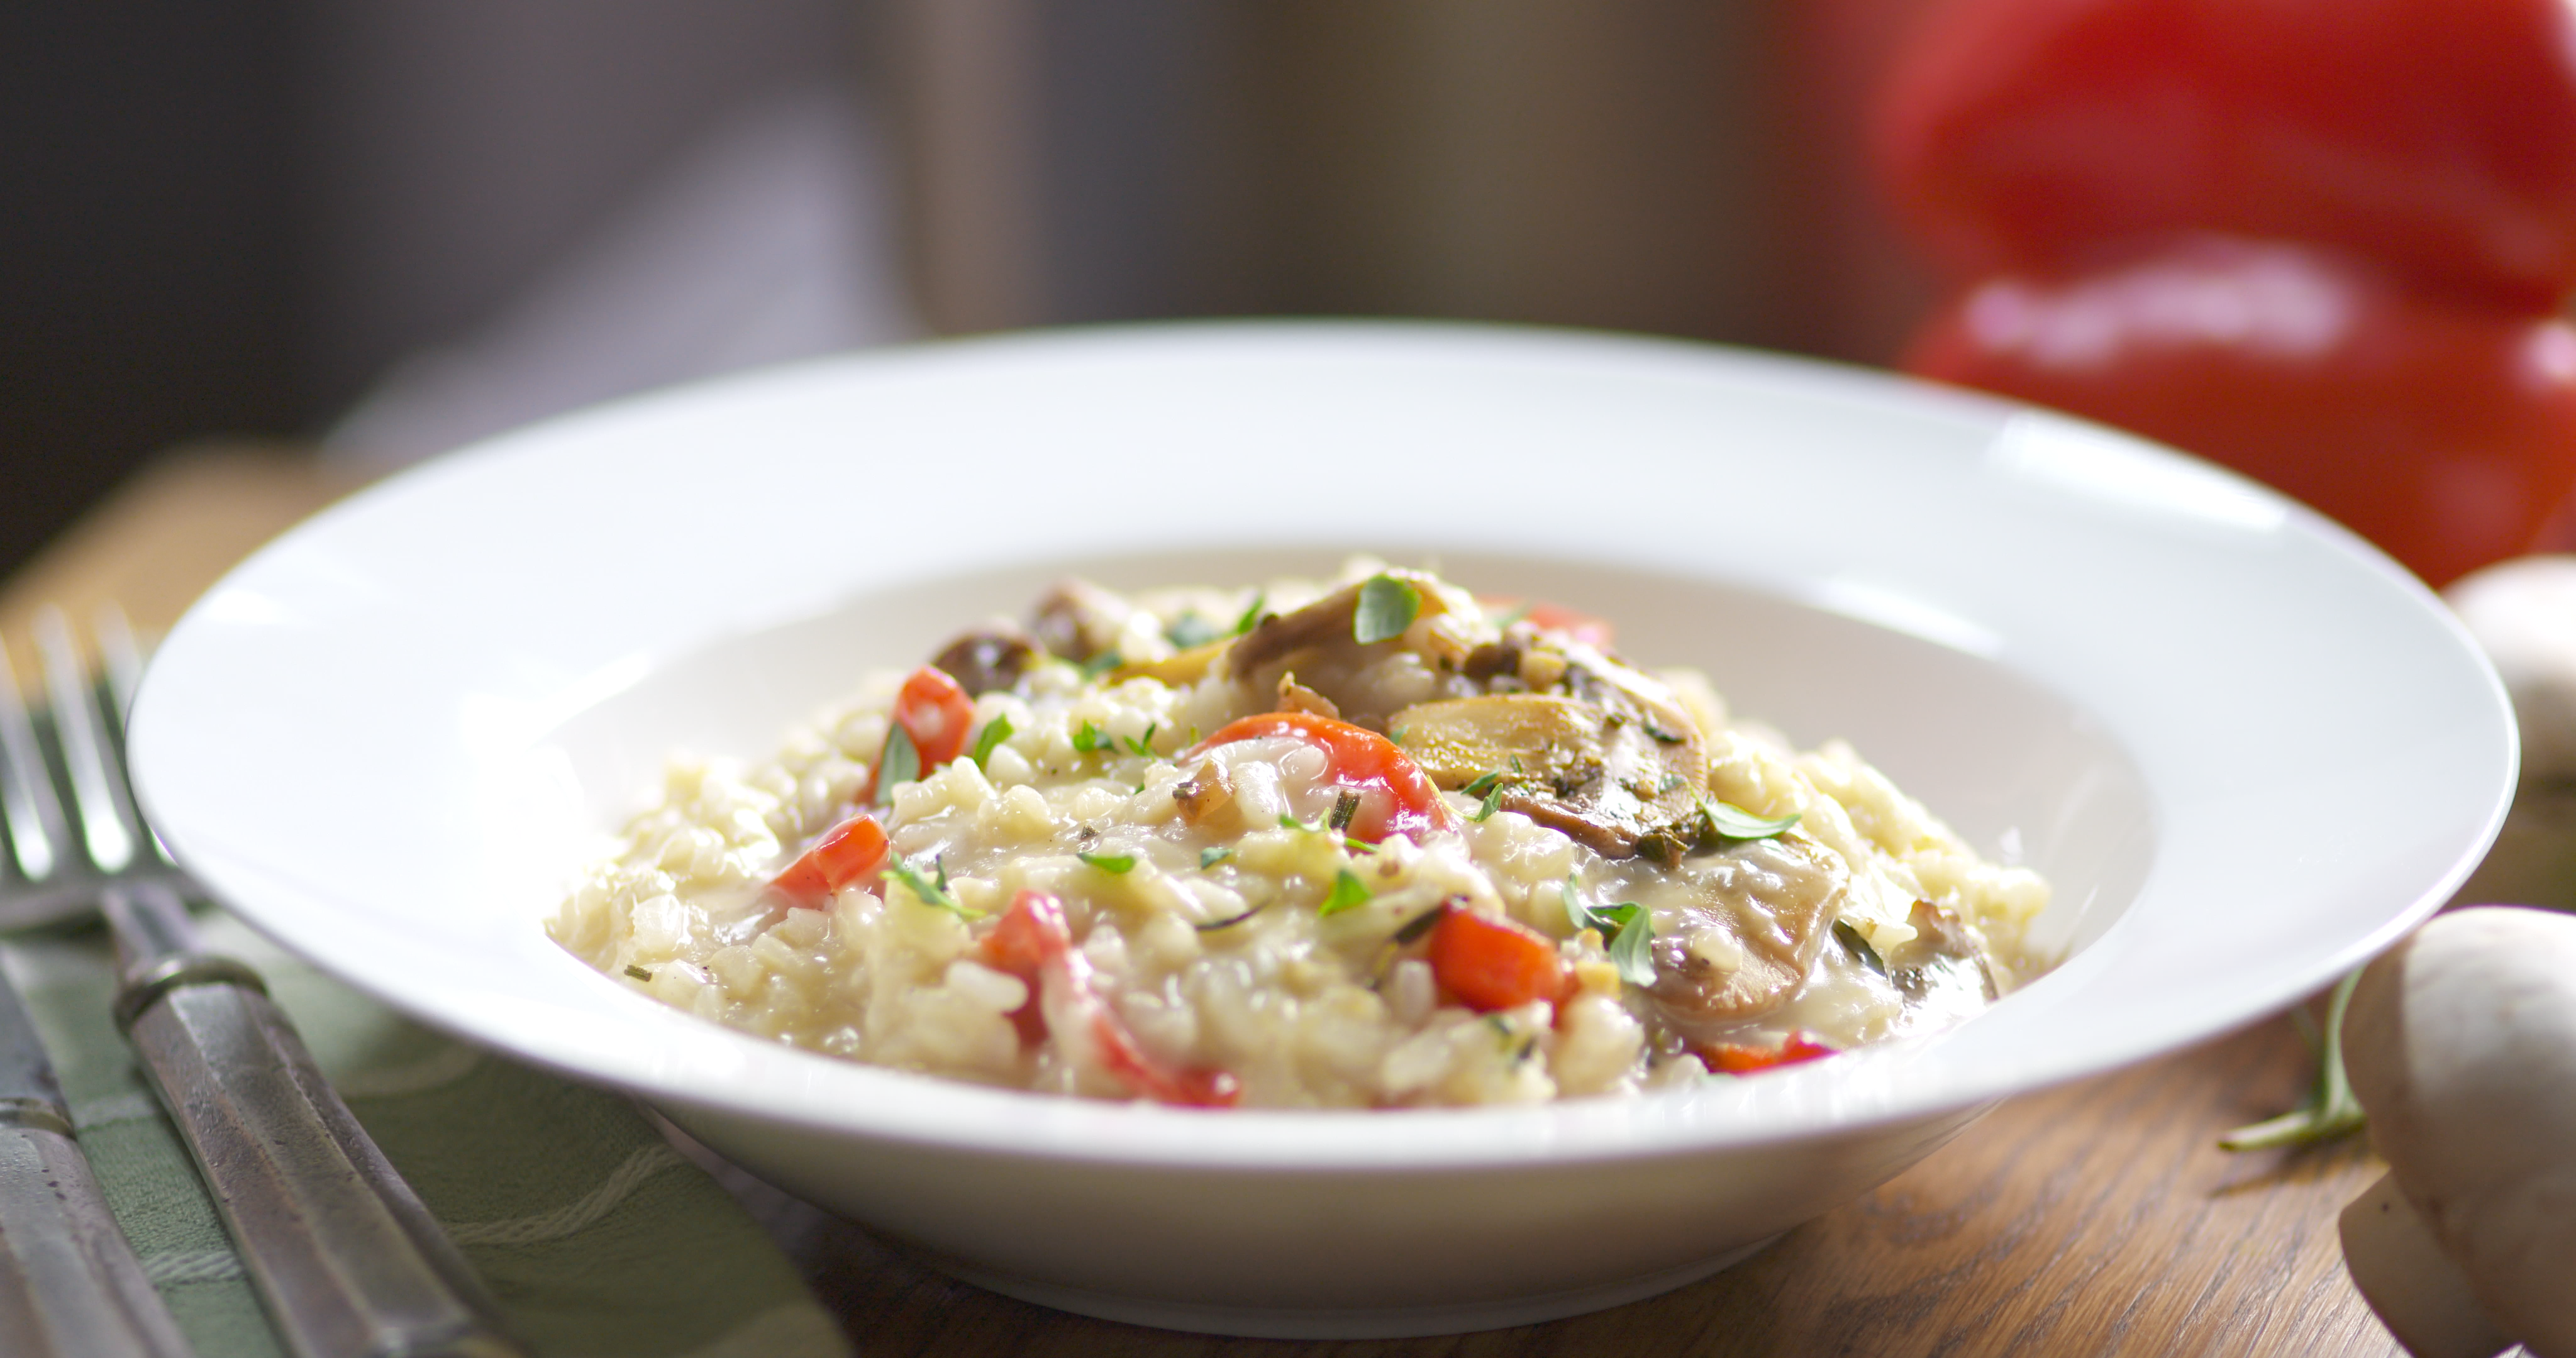 Best Bites: Smoked Gouda Risotto with Mushrooms